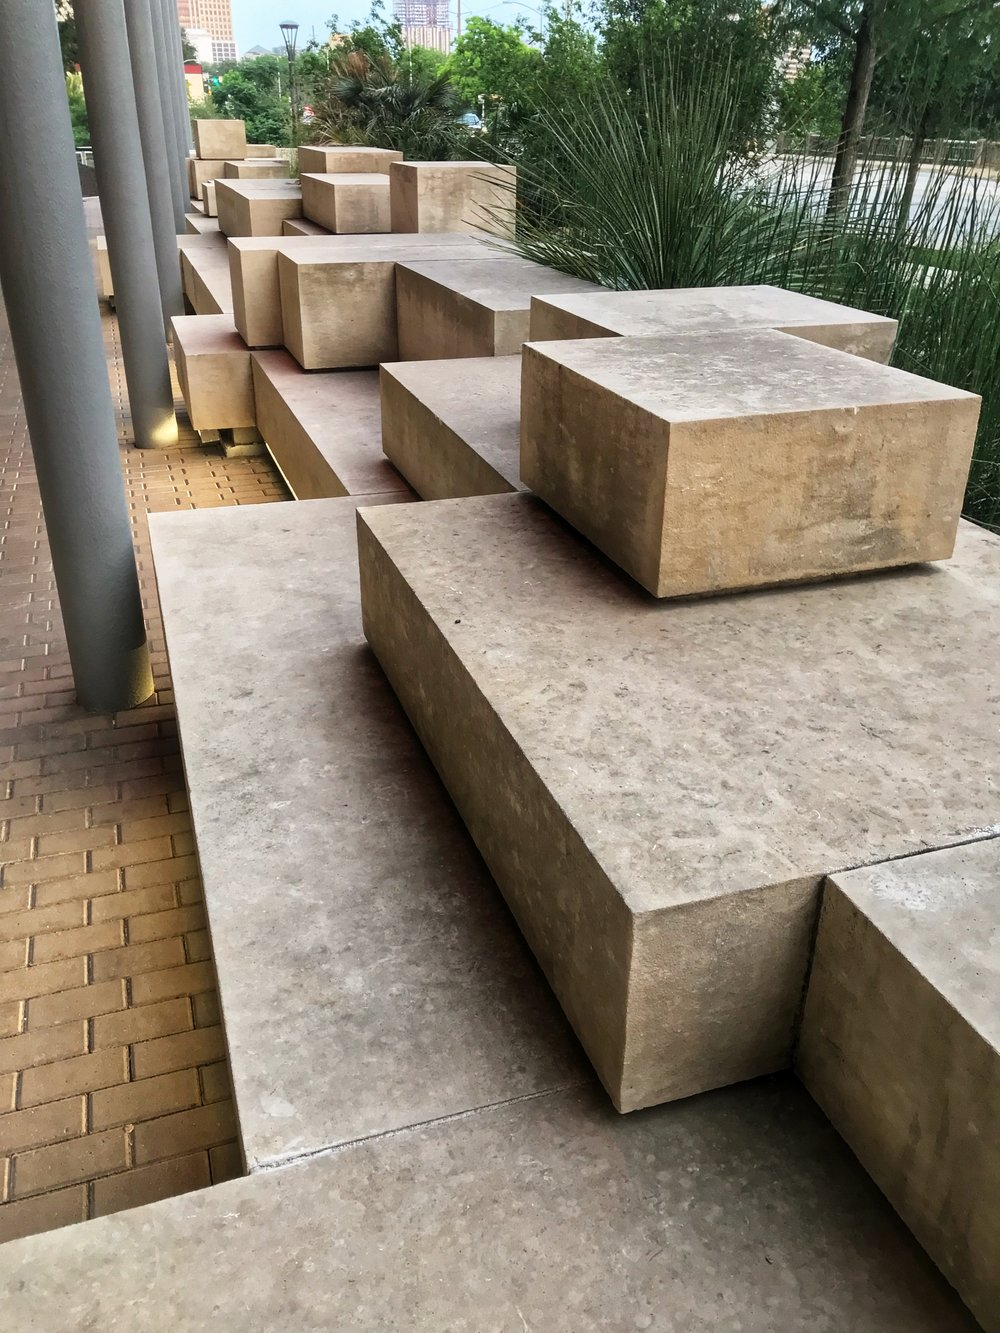 Geometric interpretations of the native, layered stone formations that are everywhere around Austin. It's what the Hill Country is made of.